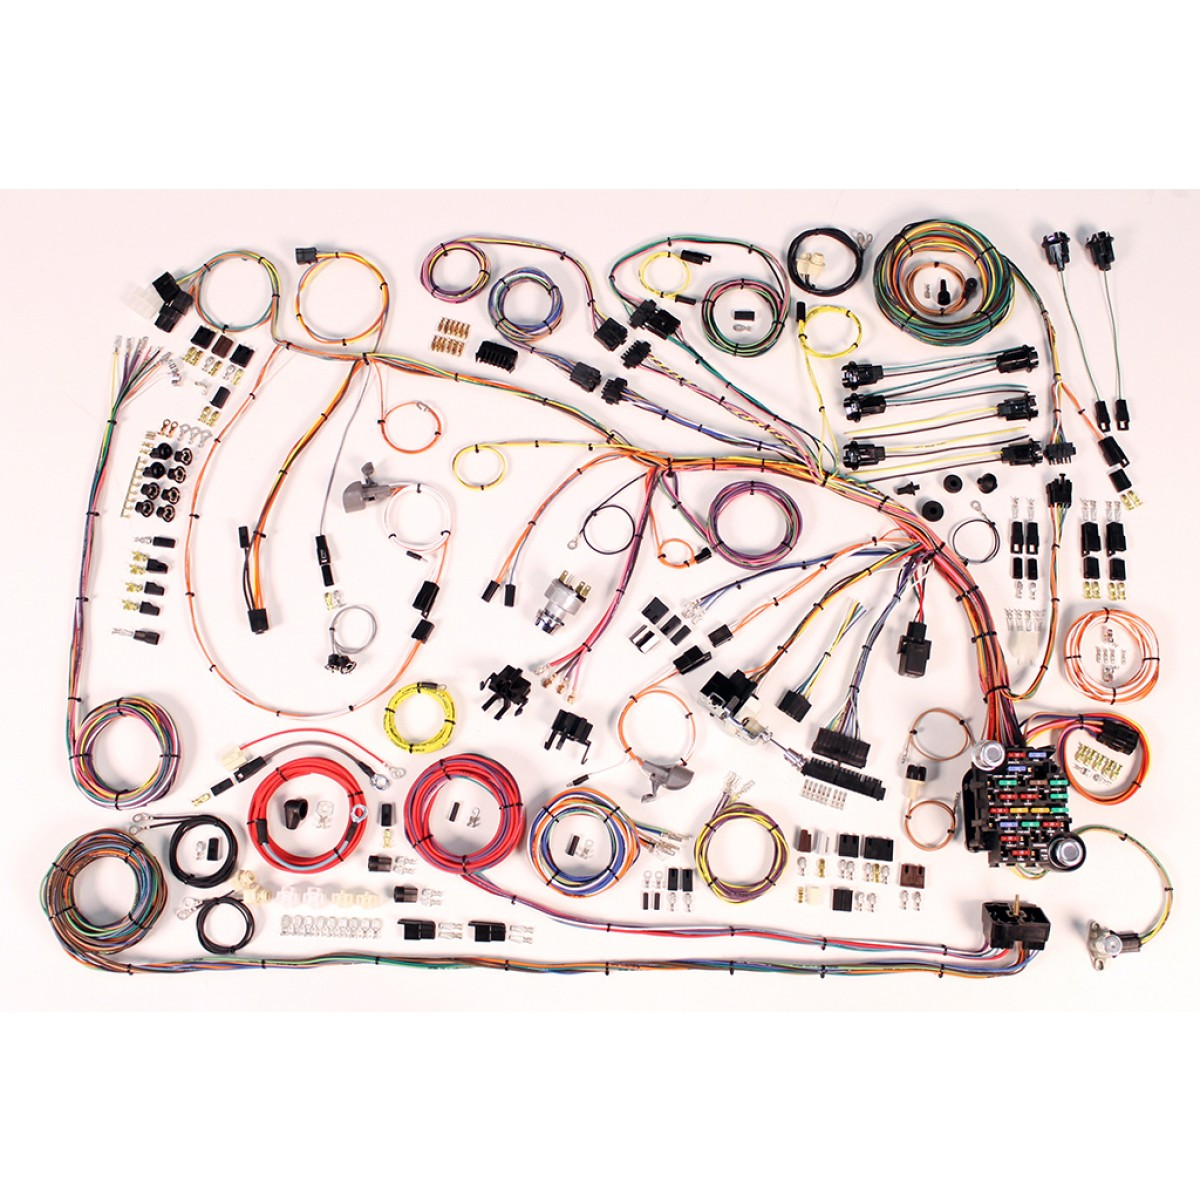 wiring harness kit 1966 1968 impala part 510372 66 68 impala full wire harness 510372 68 impala wiring harness 68 impala supernatural \u2022 free wiring GM Headlight Wiring Harness at gsmportal.co